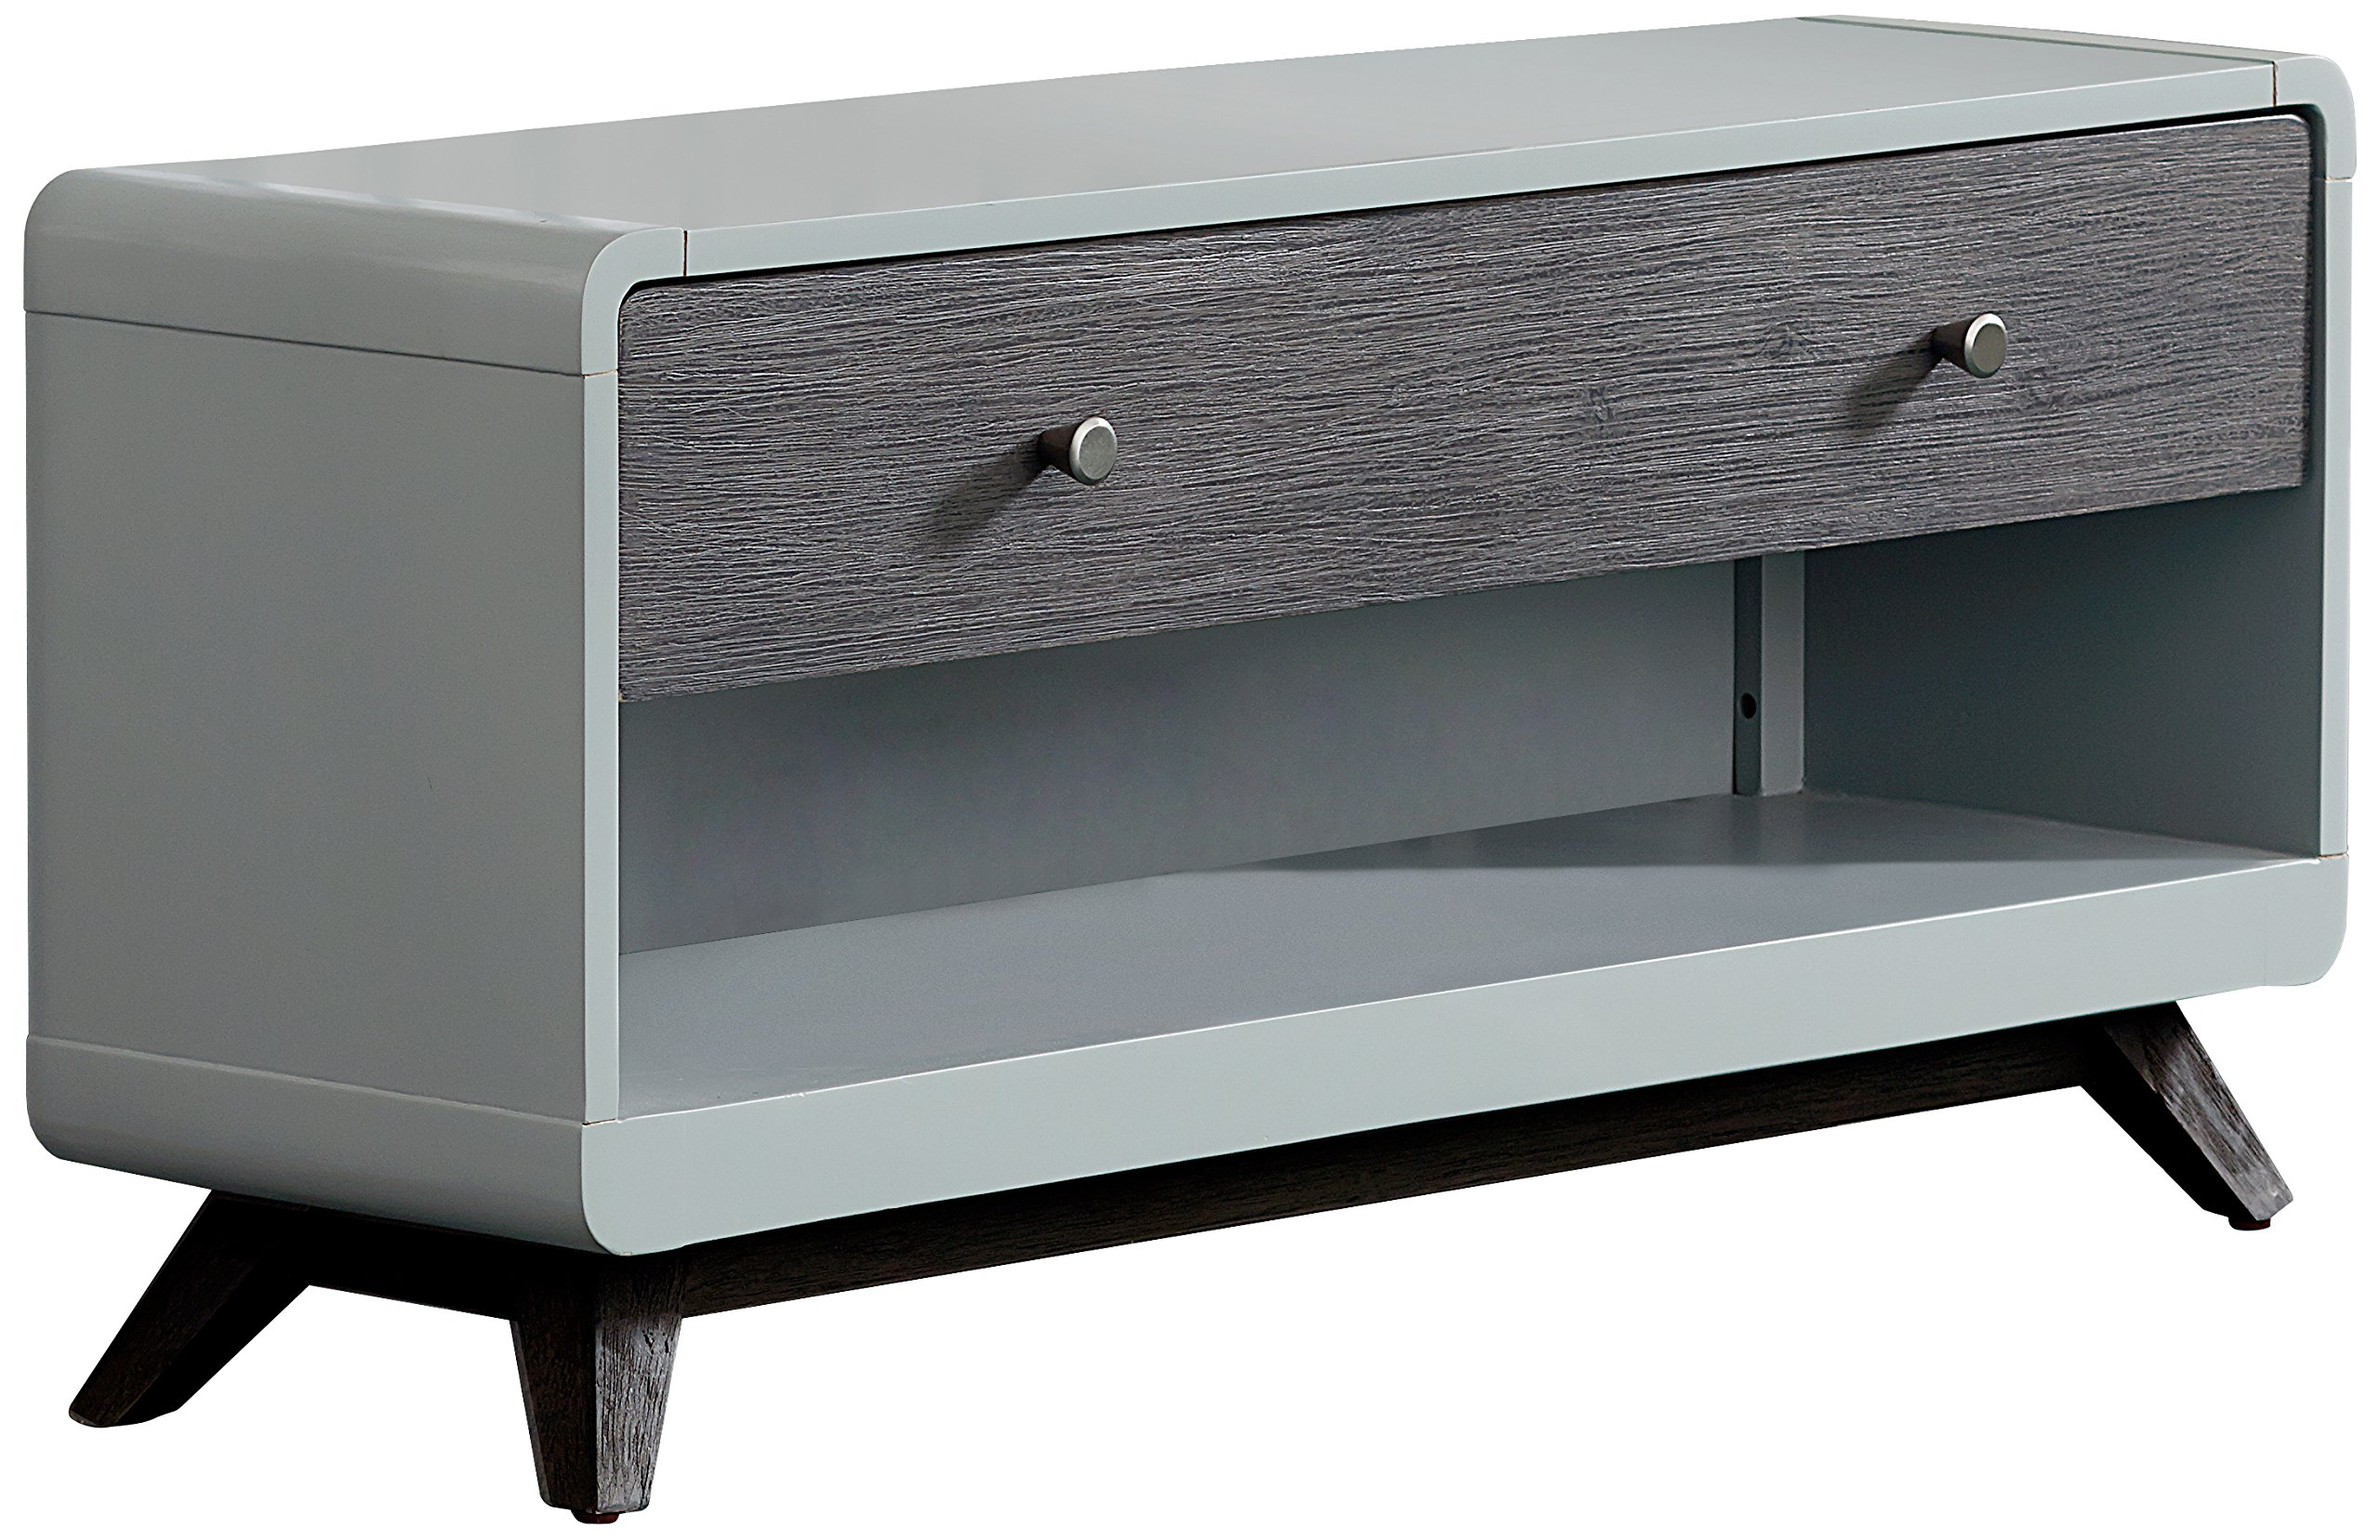 Hillsdale Kids and Teens 7101-775 Dressing Bench, Gray